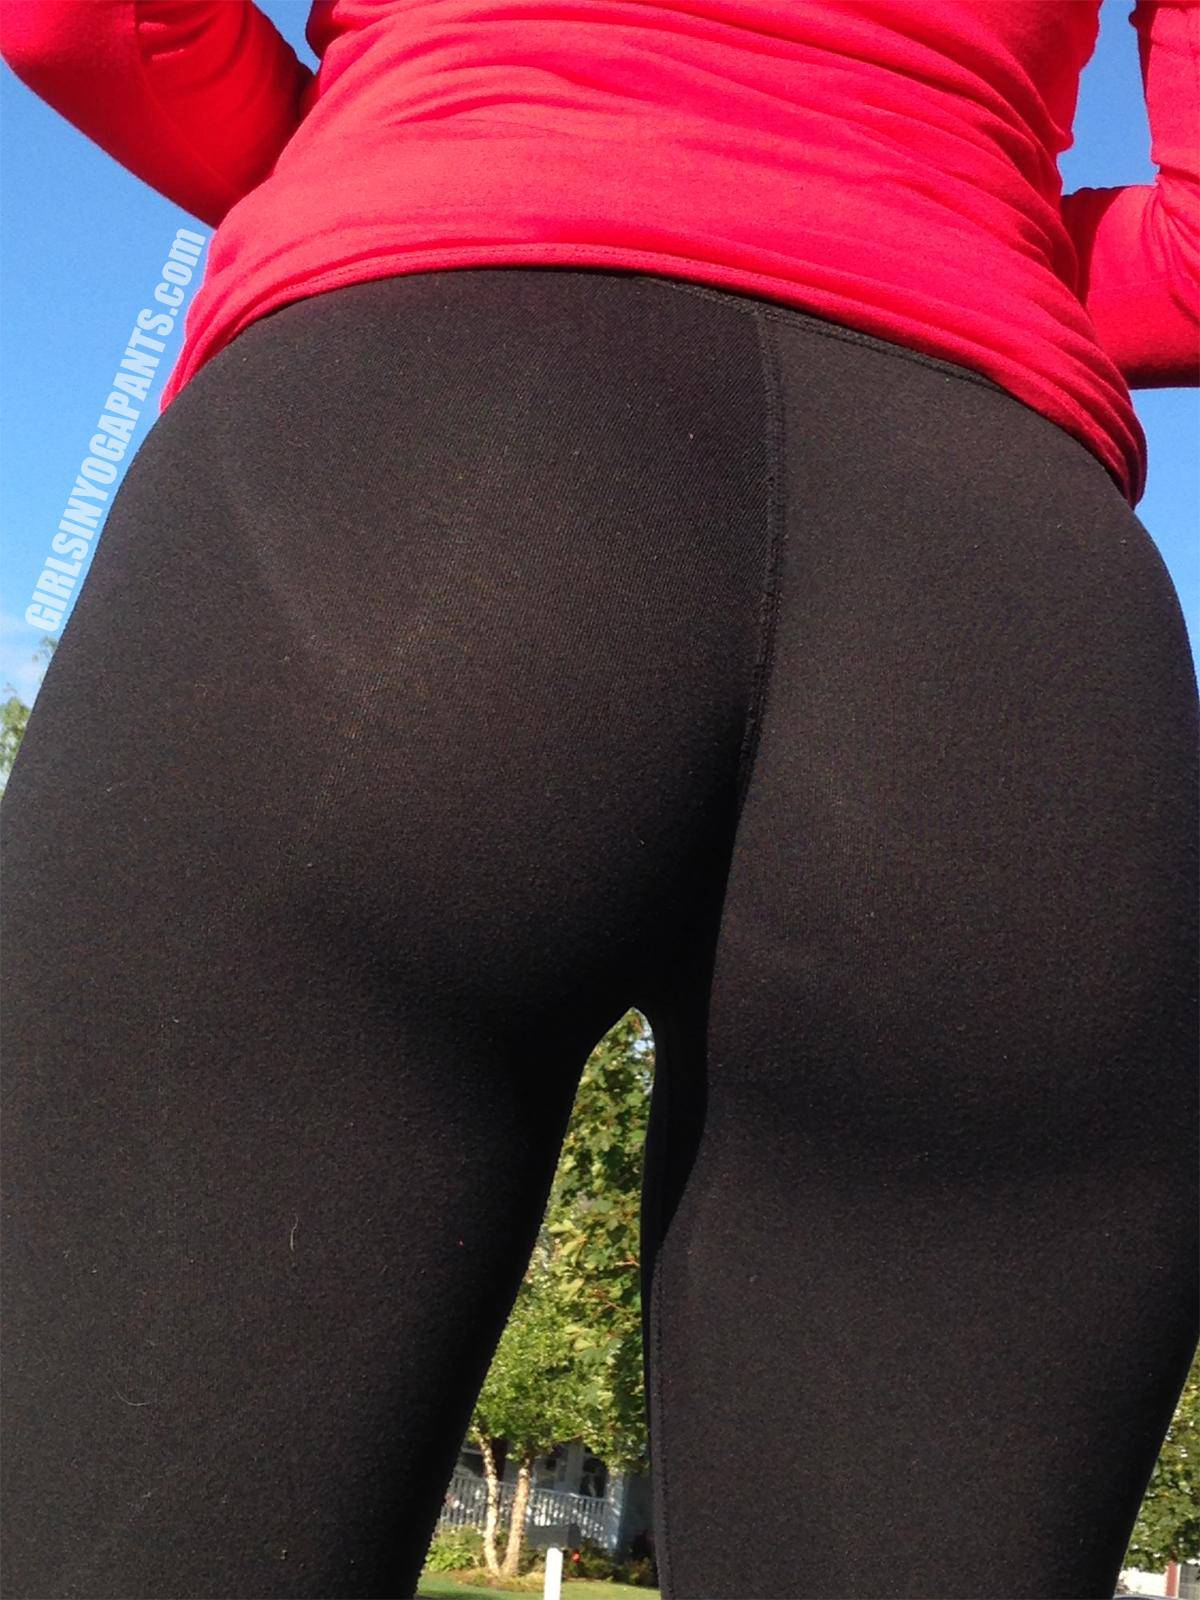 With Love, From The Cougar  Hot Girls In Yoga Pants -8221